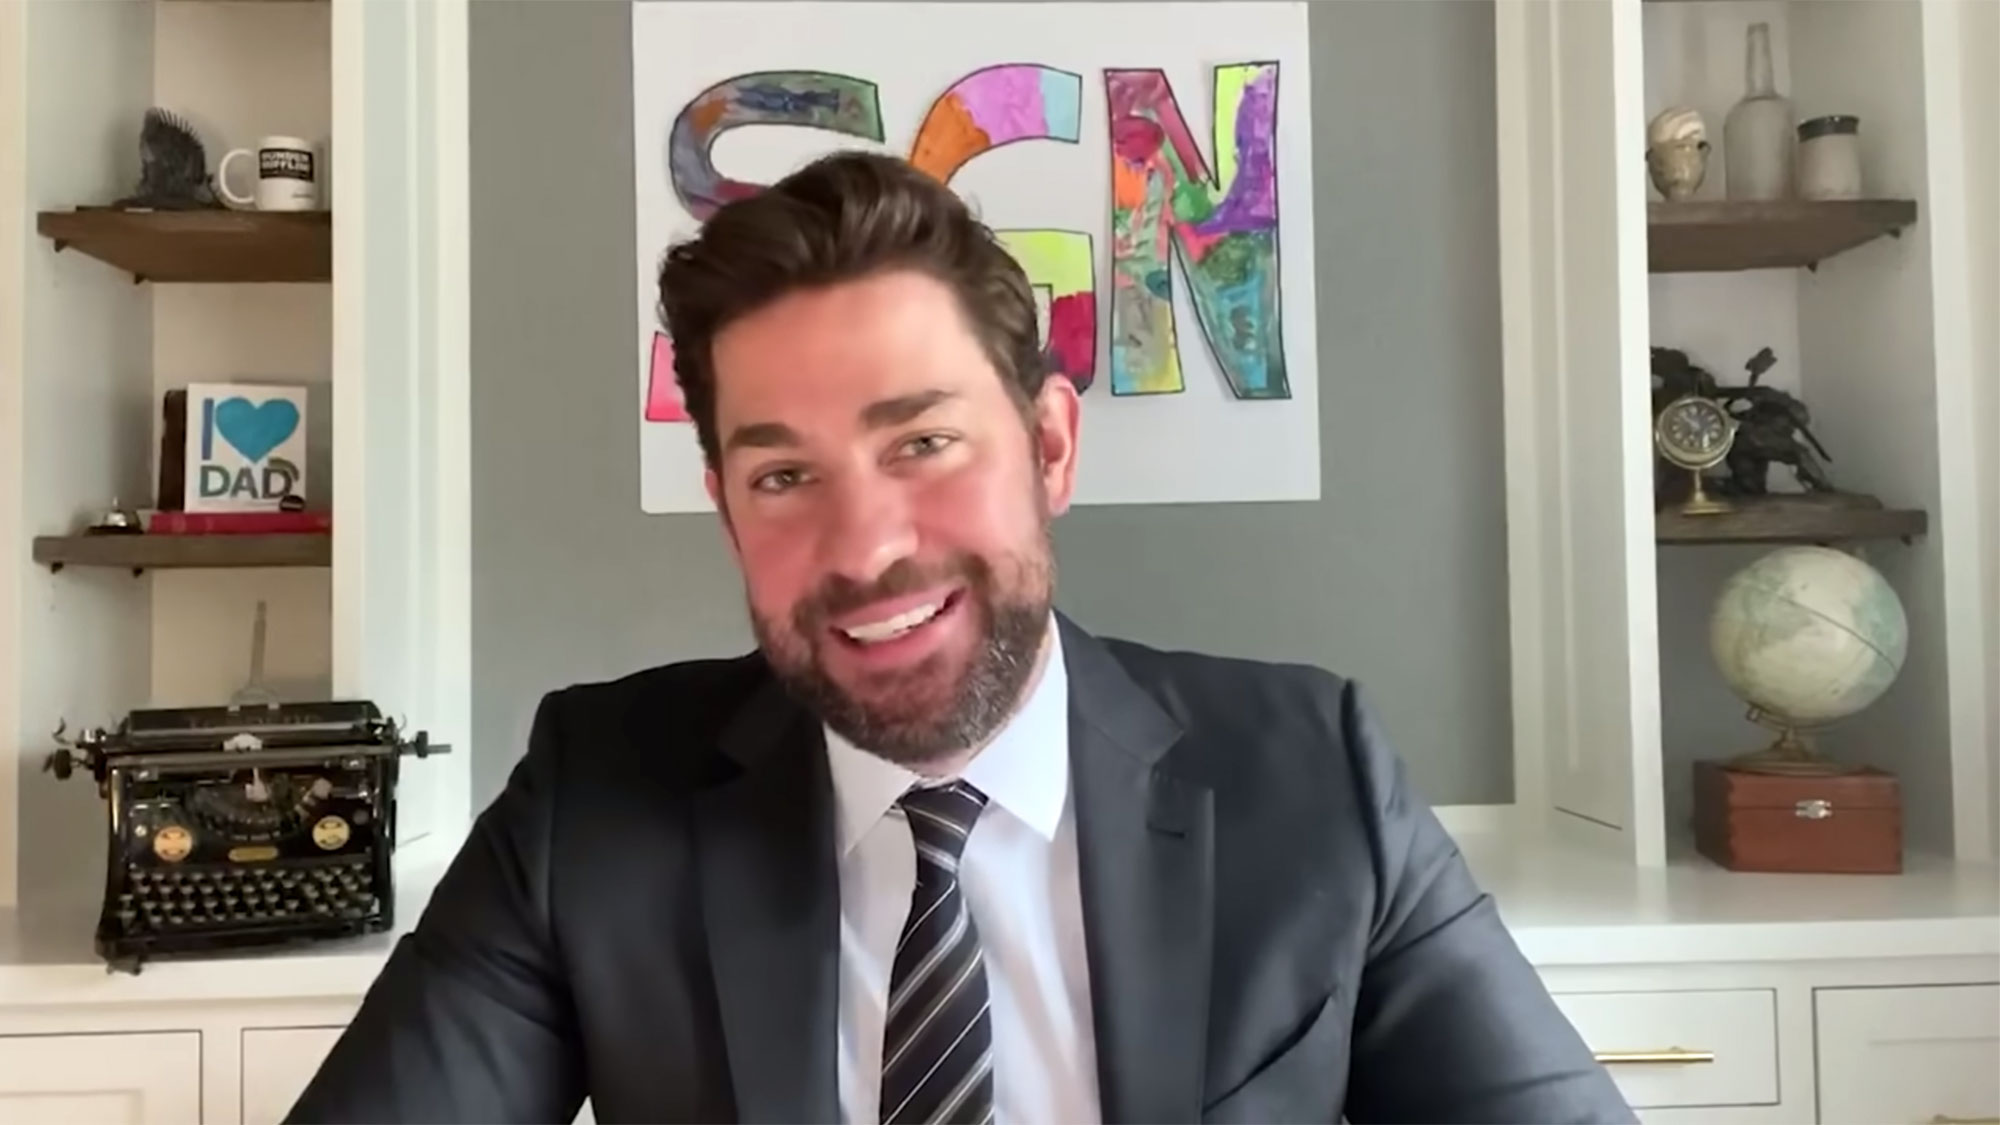 Some Good News with John Krasinski Ep. 1